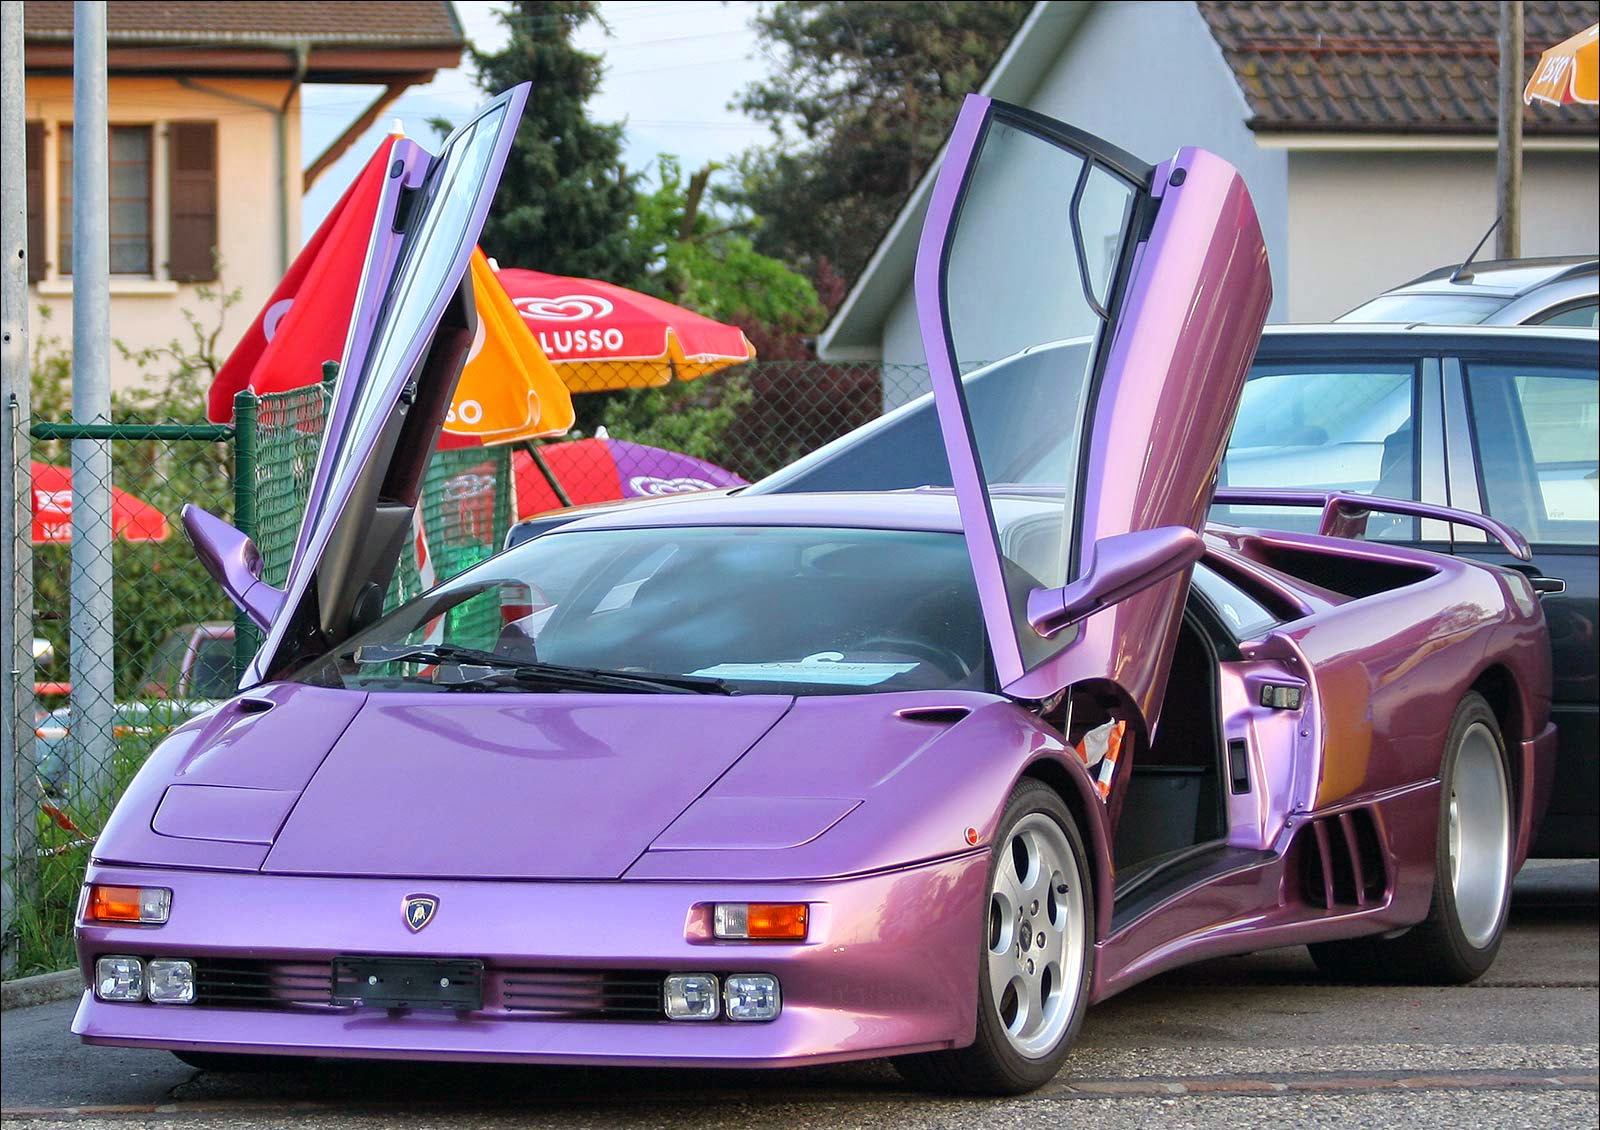 The Diablo was the fastest car in production when it was released in 1990.